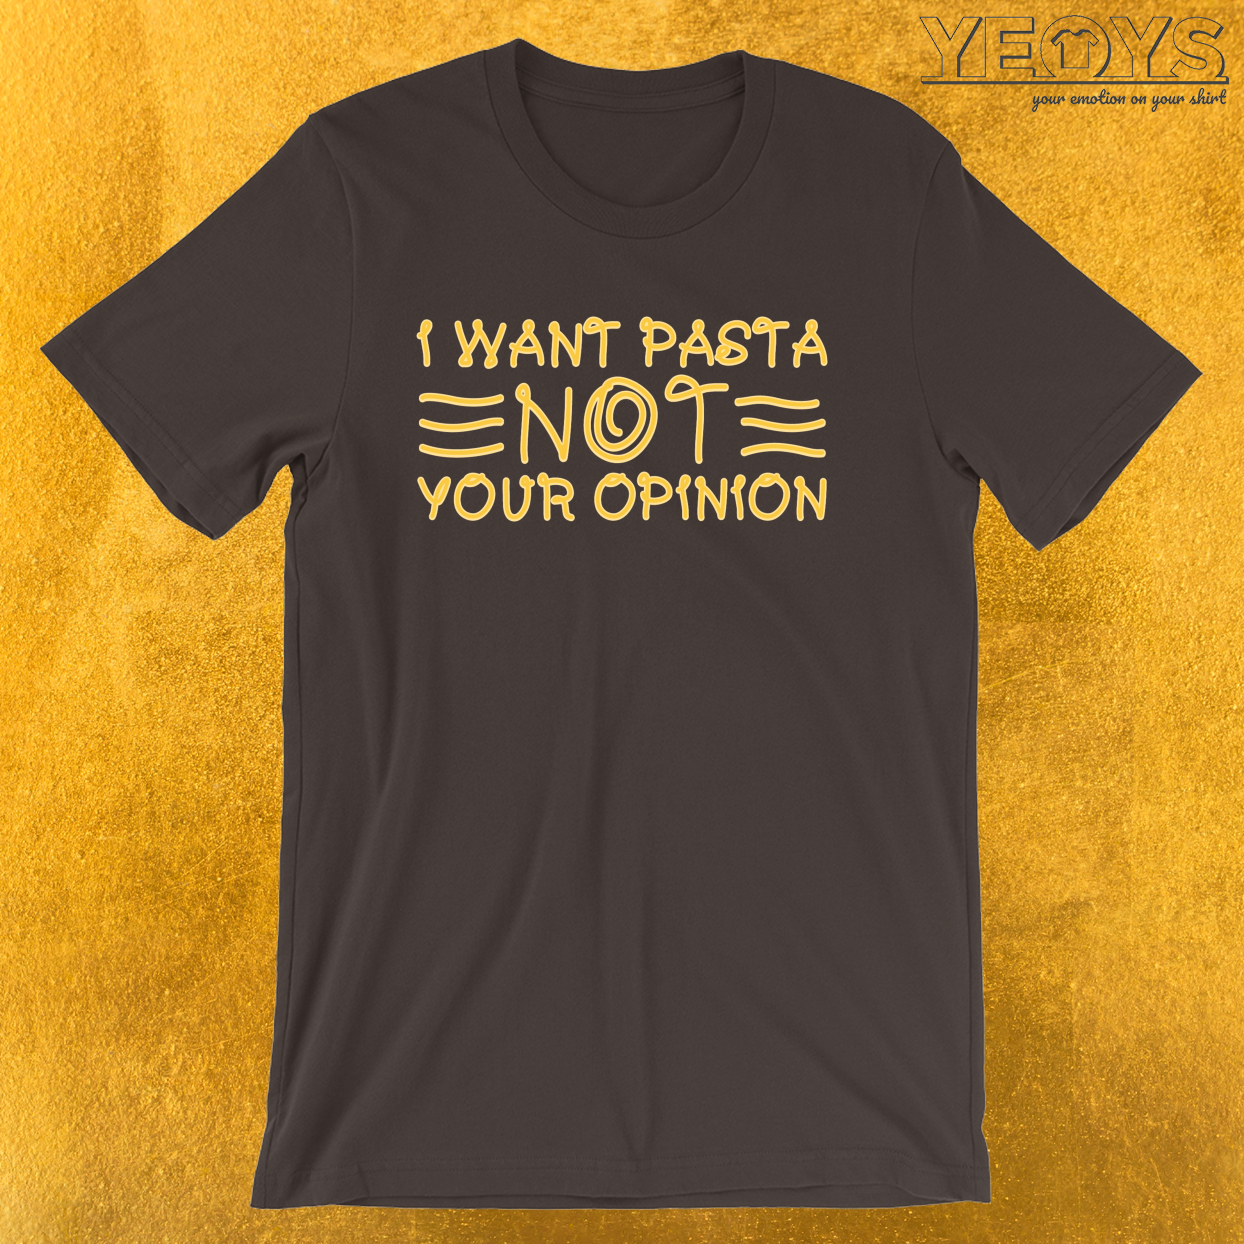 I Want Pasta Not Your Opinion – Funny I Love Italian Pasta Tee